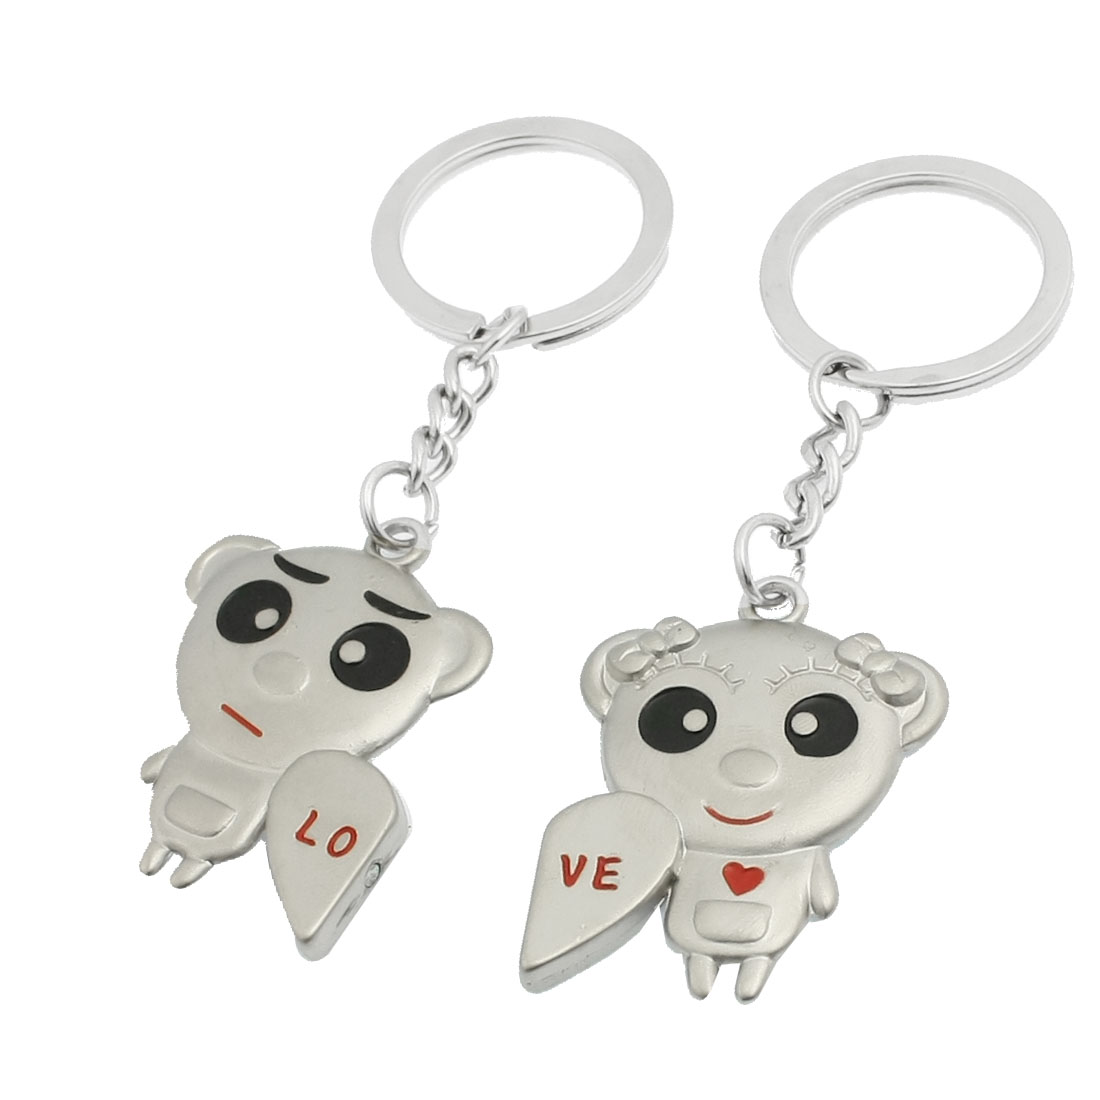 2 Pcs Metal Heart People Accent Pendent Keyrings Key Holder for Lover